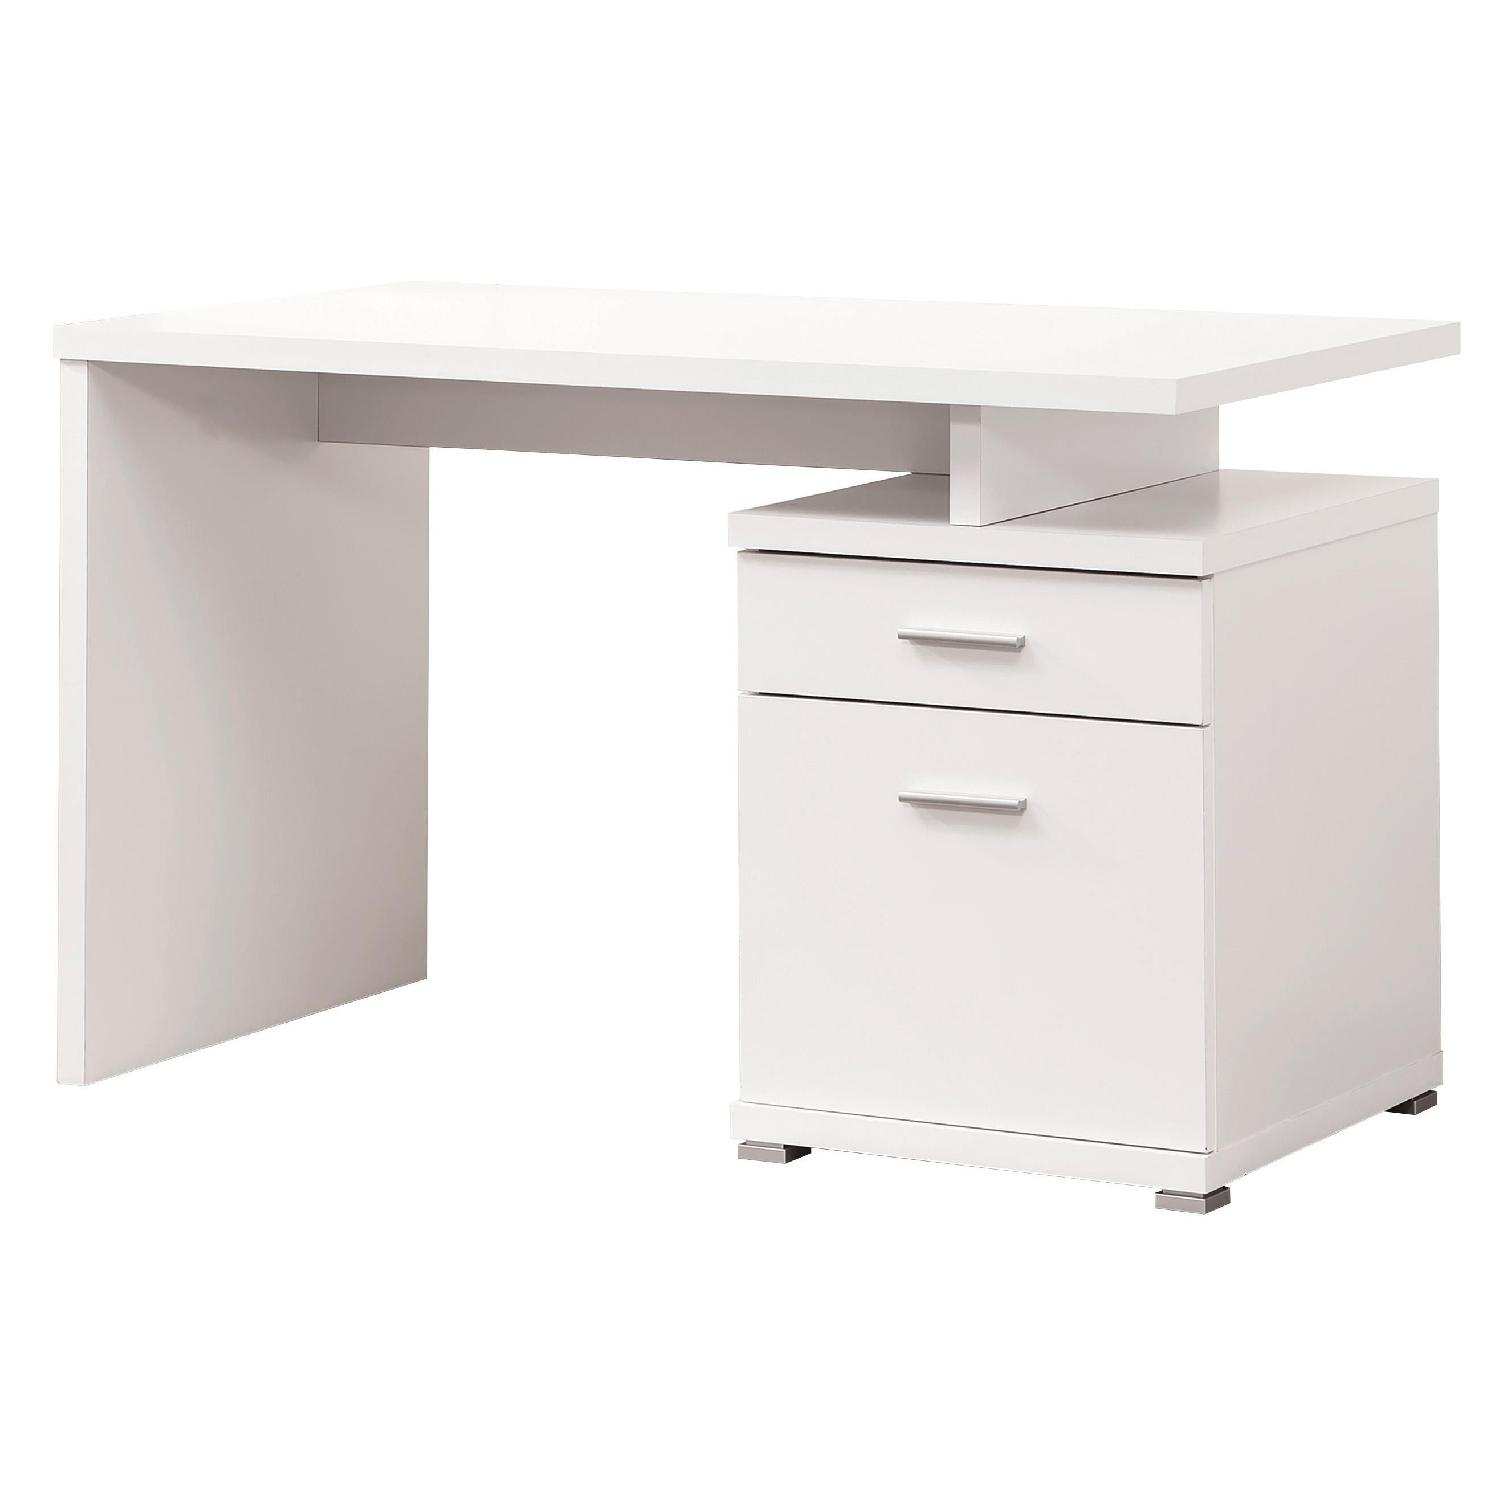 Contemporary Writing Desk w/ Built-in Cabinet in White Finish